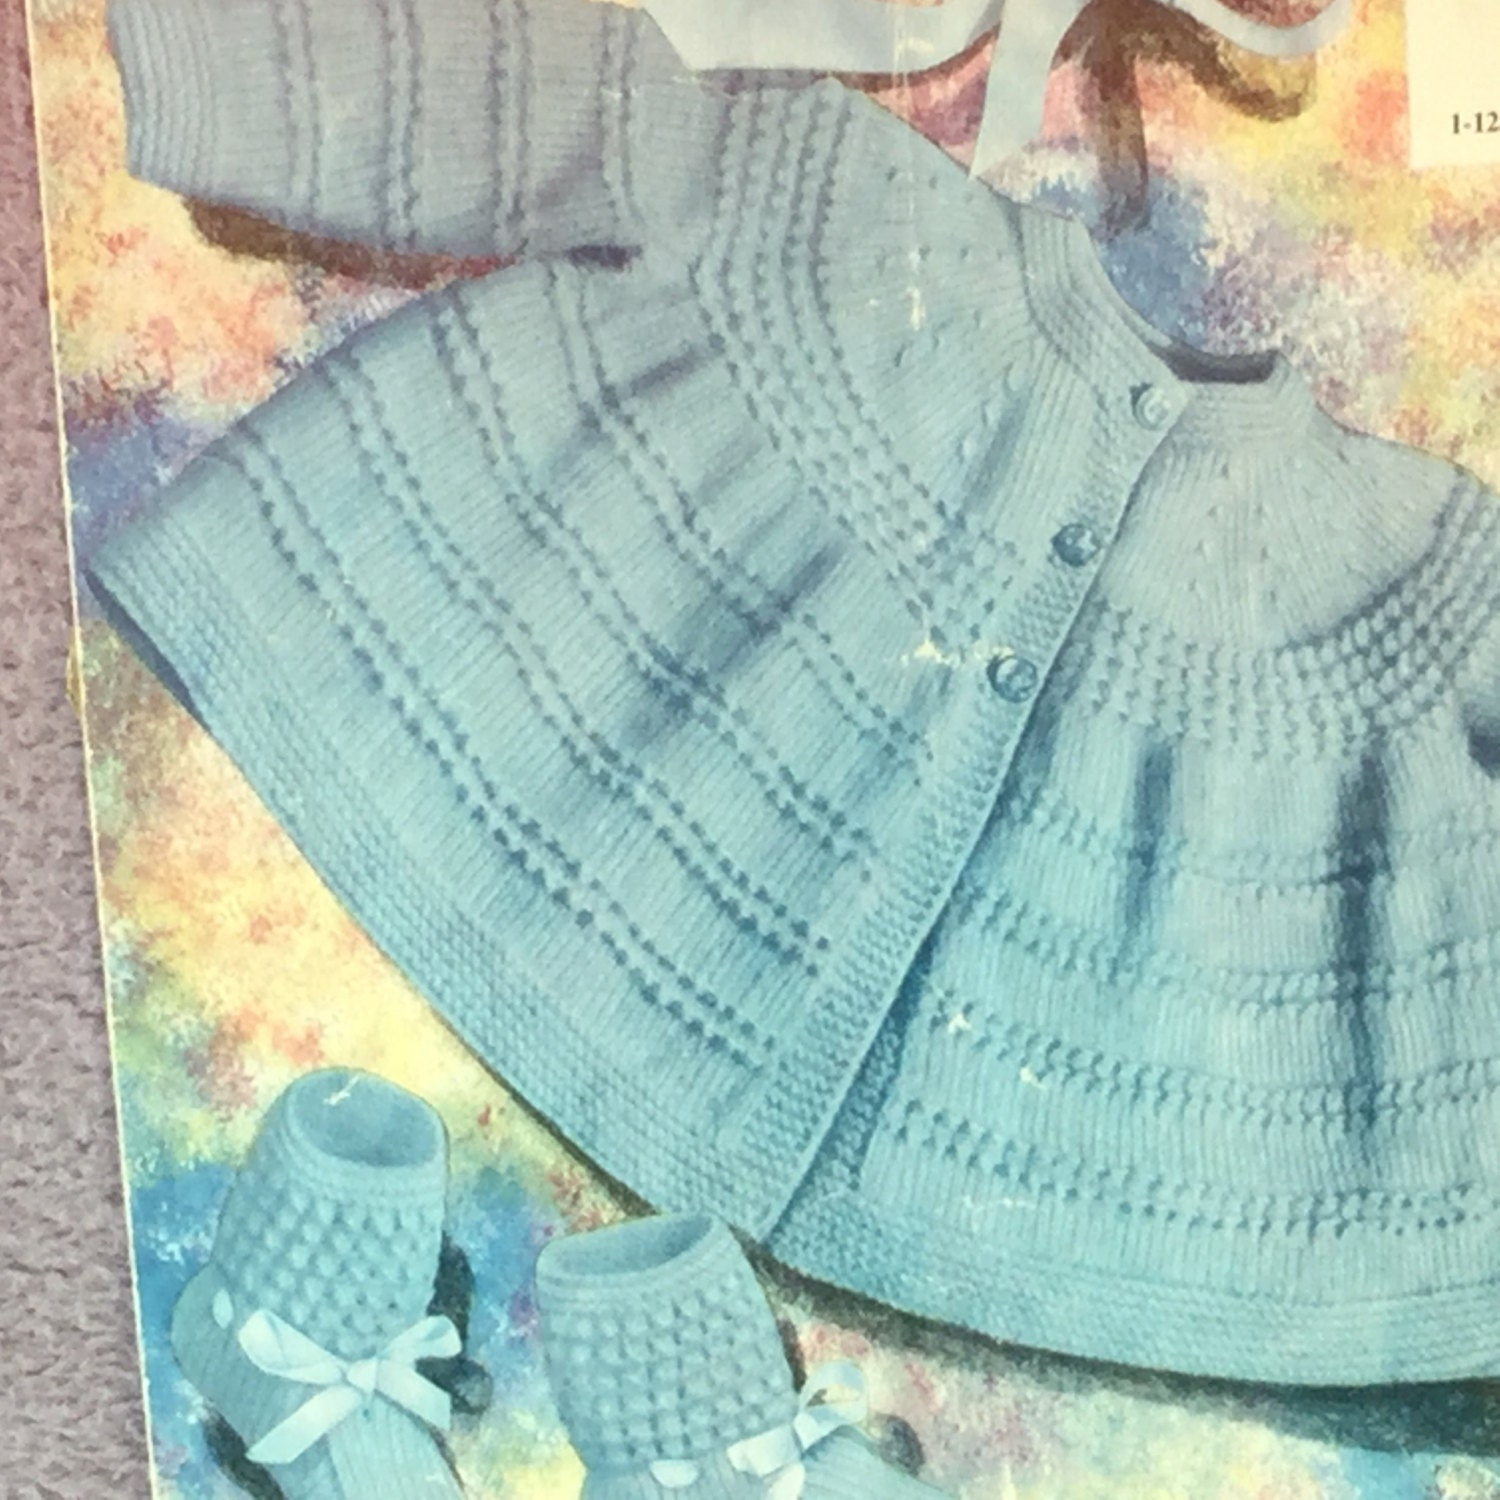 bf34f34c0 UK EU SELLER Vintage 3-ply baby knitting pattern Jacket with